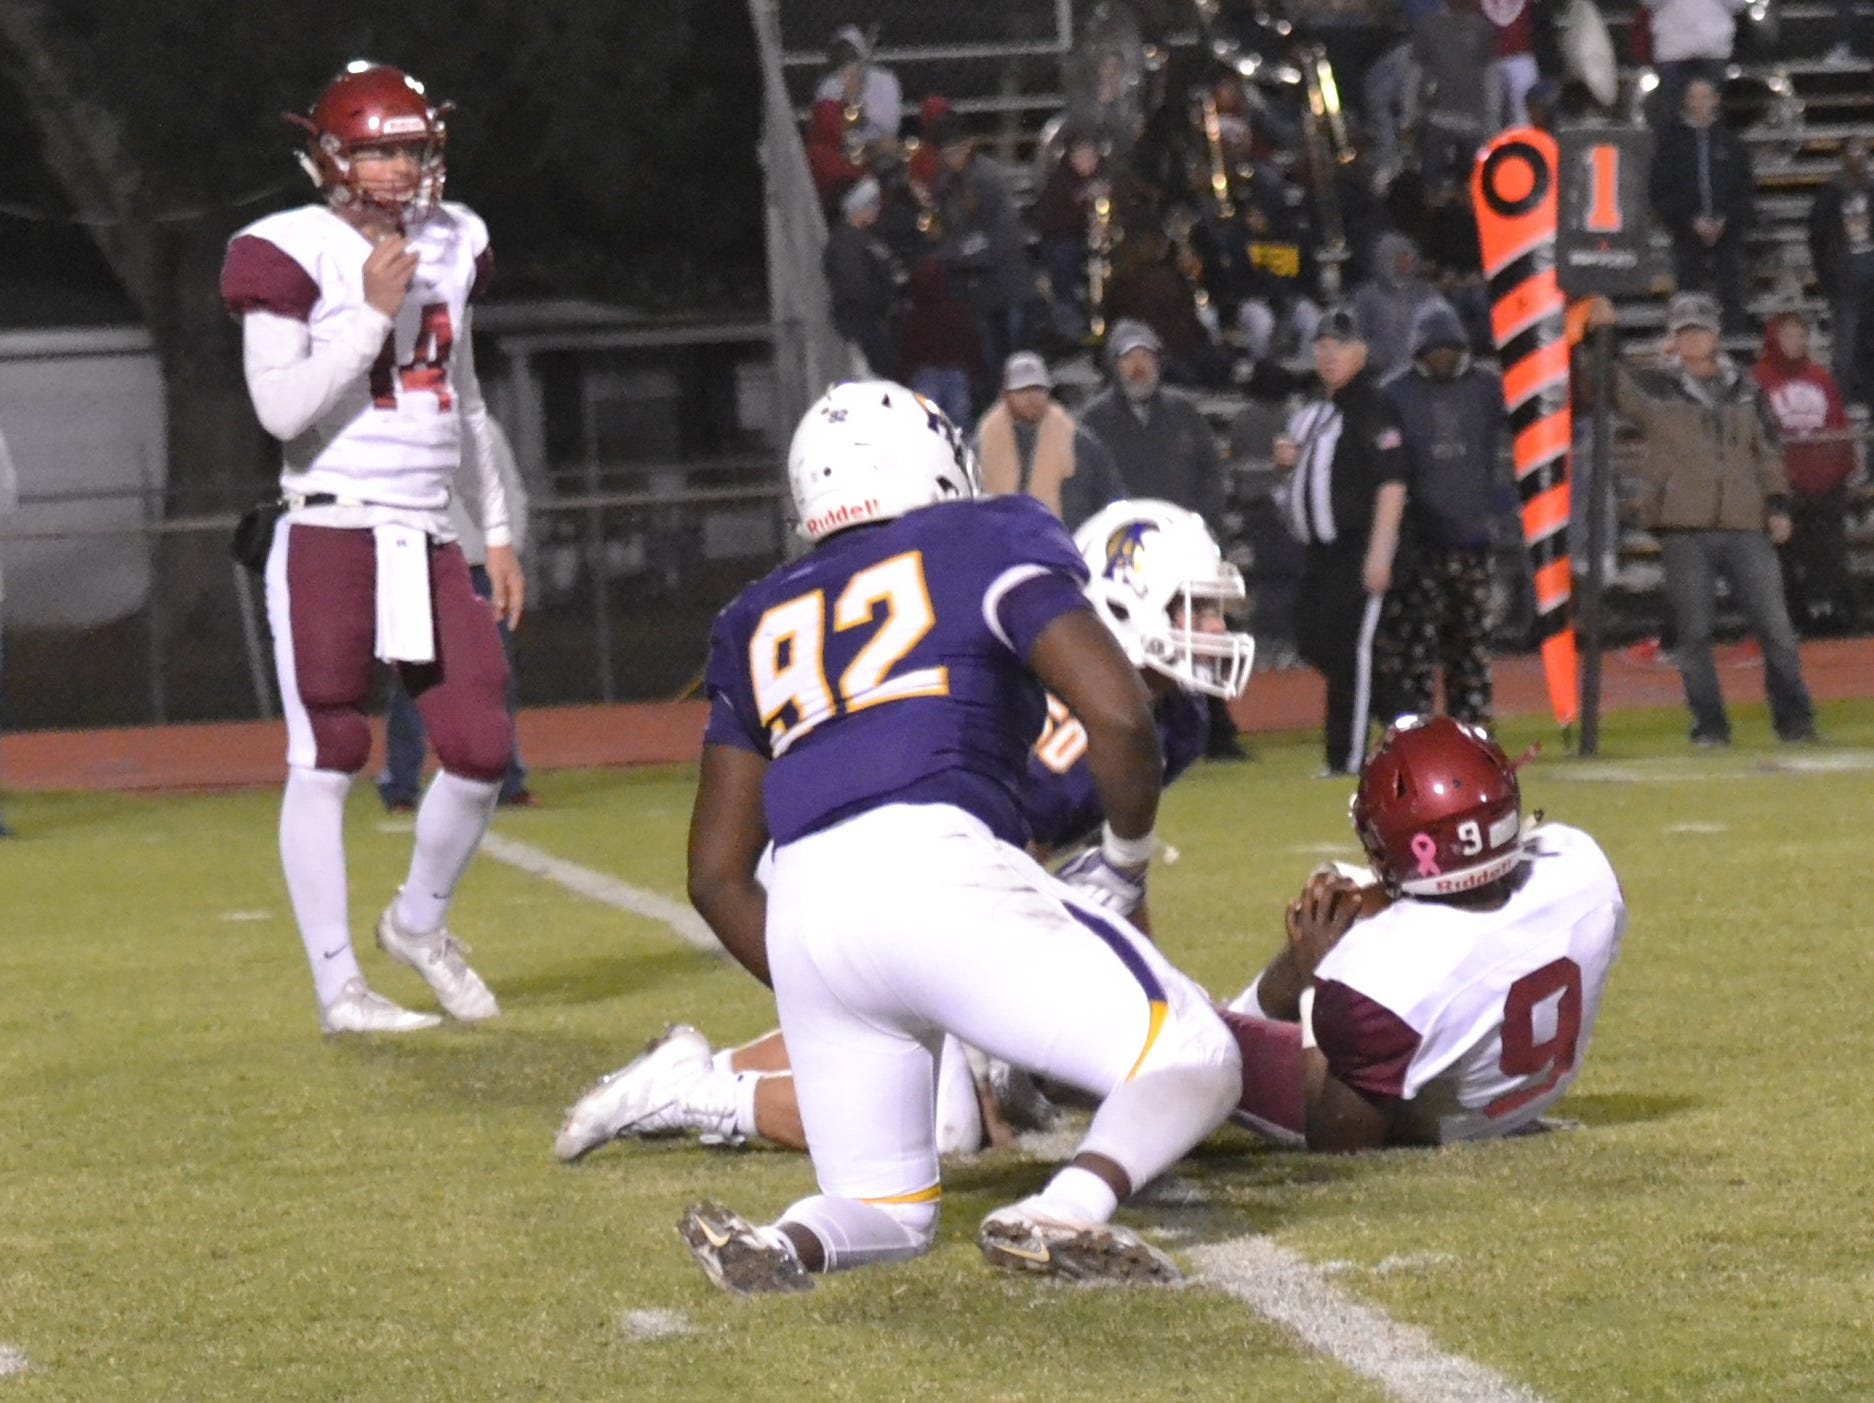 ASH defenders Austin Williams (92) and Dylan Courville (50) team up to take down Ouachita's Dylan Roberts (9) in the backfield for a big loss on a first down play.